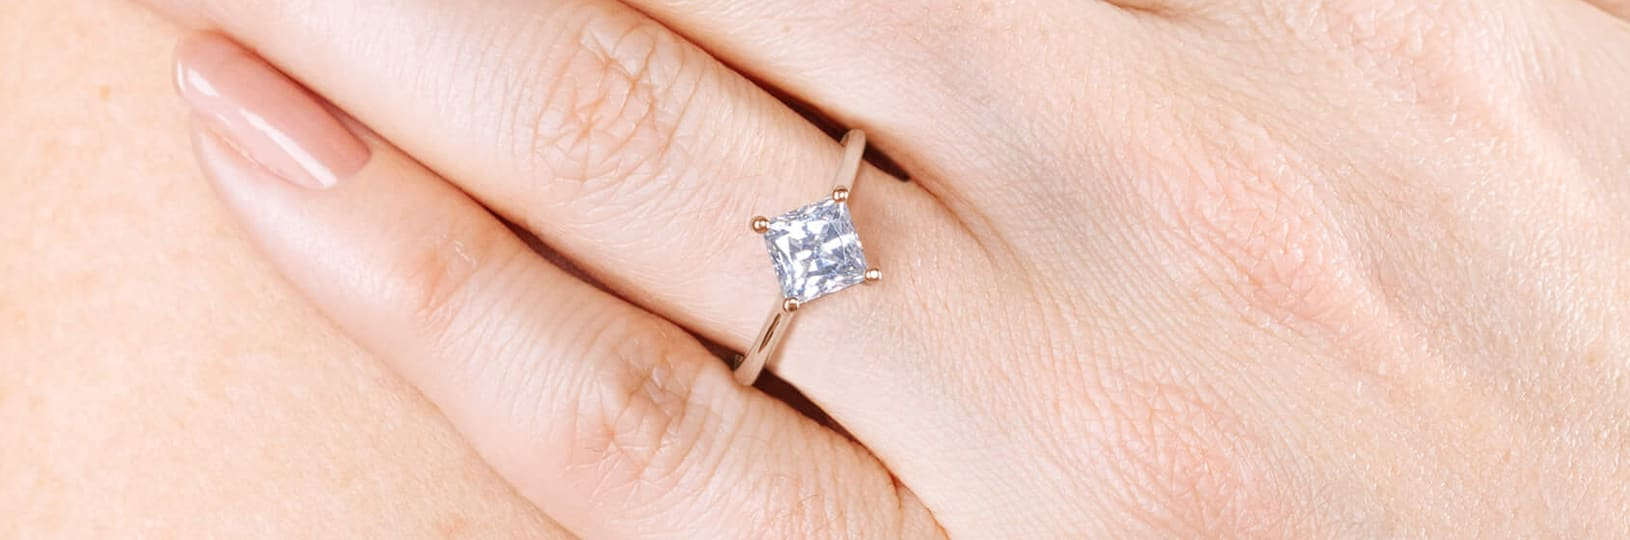 Image of a lab grown diamond engagement ring